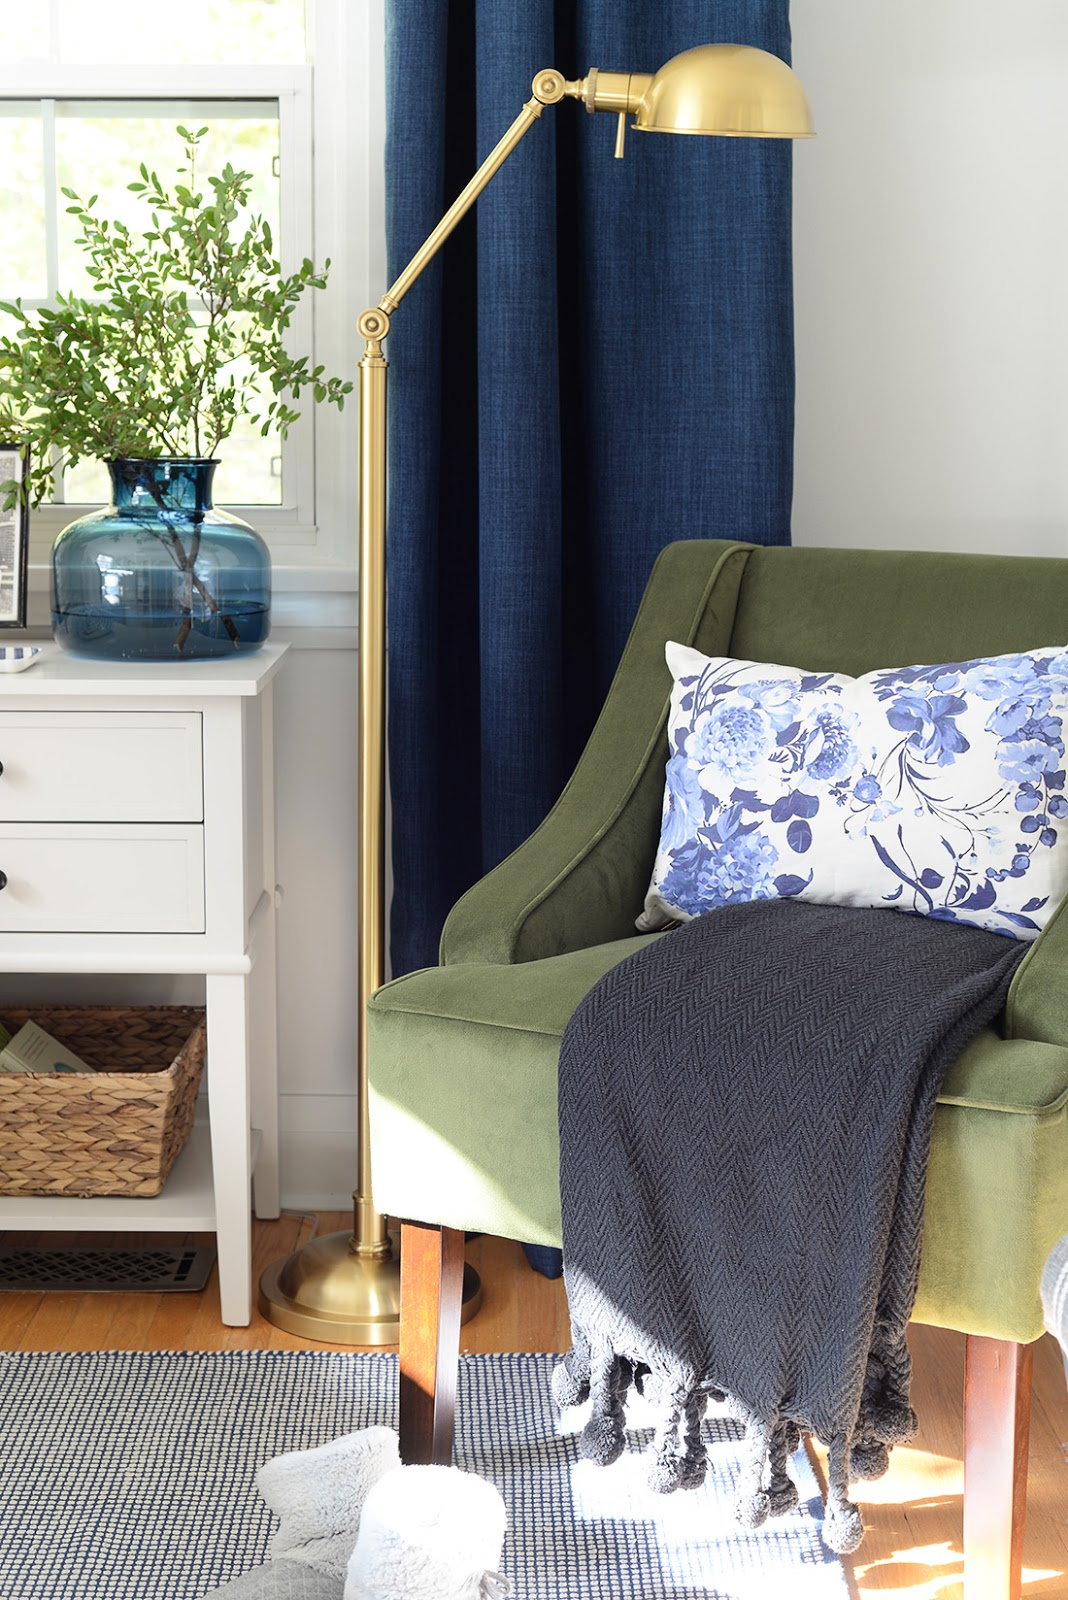 hudson valley lighting girard floor lamp, navy blue curtains, ikea hemnes desk, homepop swoop arm velvet chair, velvet green chair